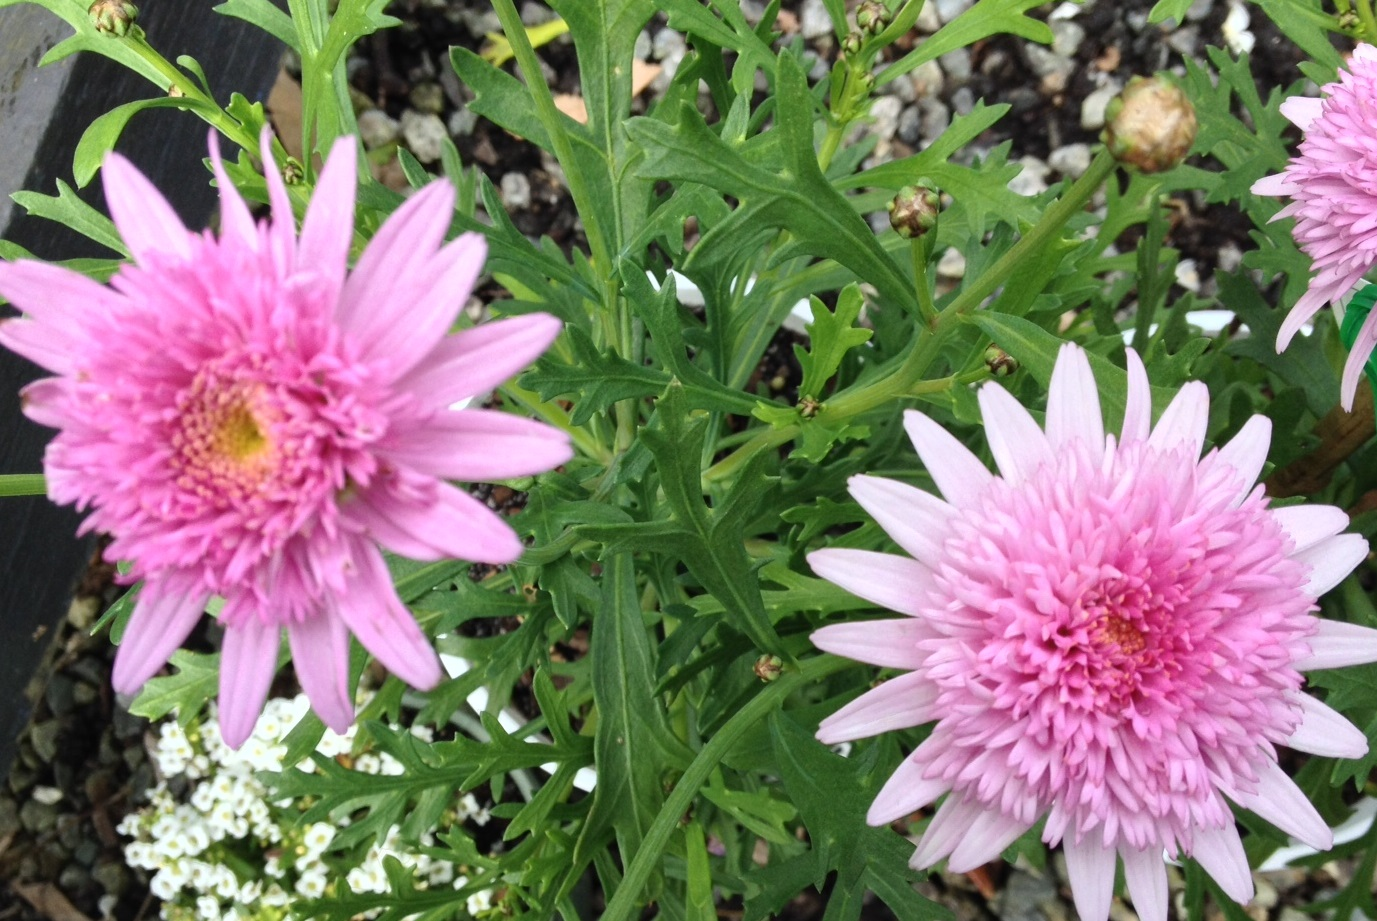 Chrysanthemum double pink common name marguerite or paris daisy chrysanthemum double pink izmirmasajfo Image collections